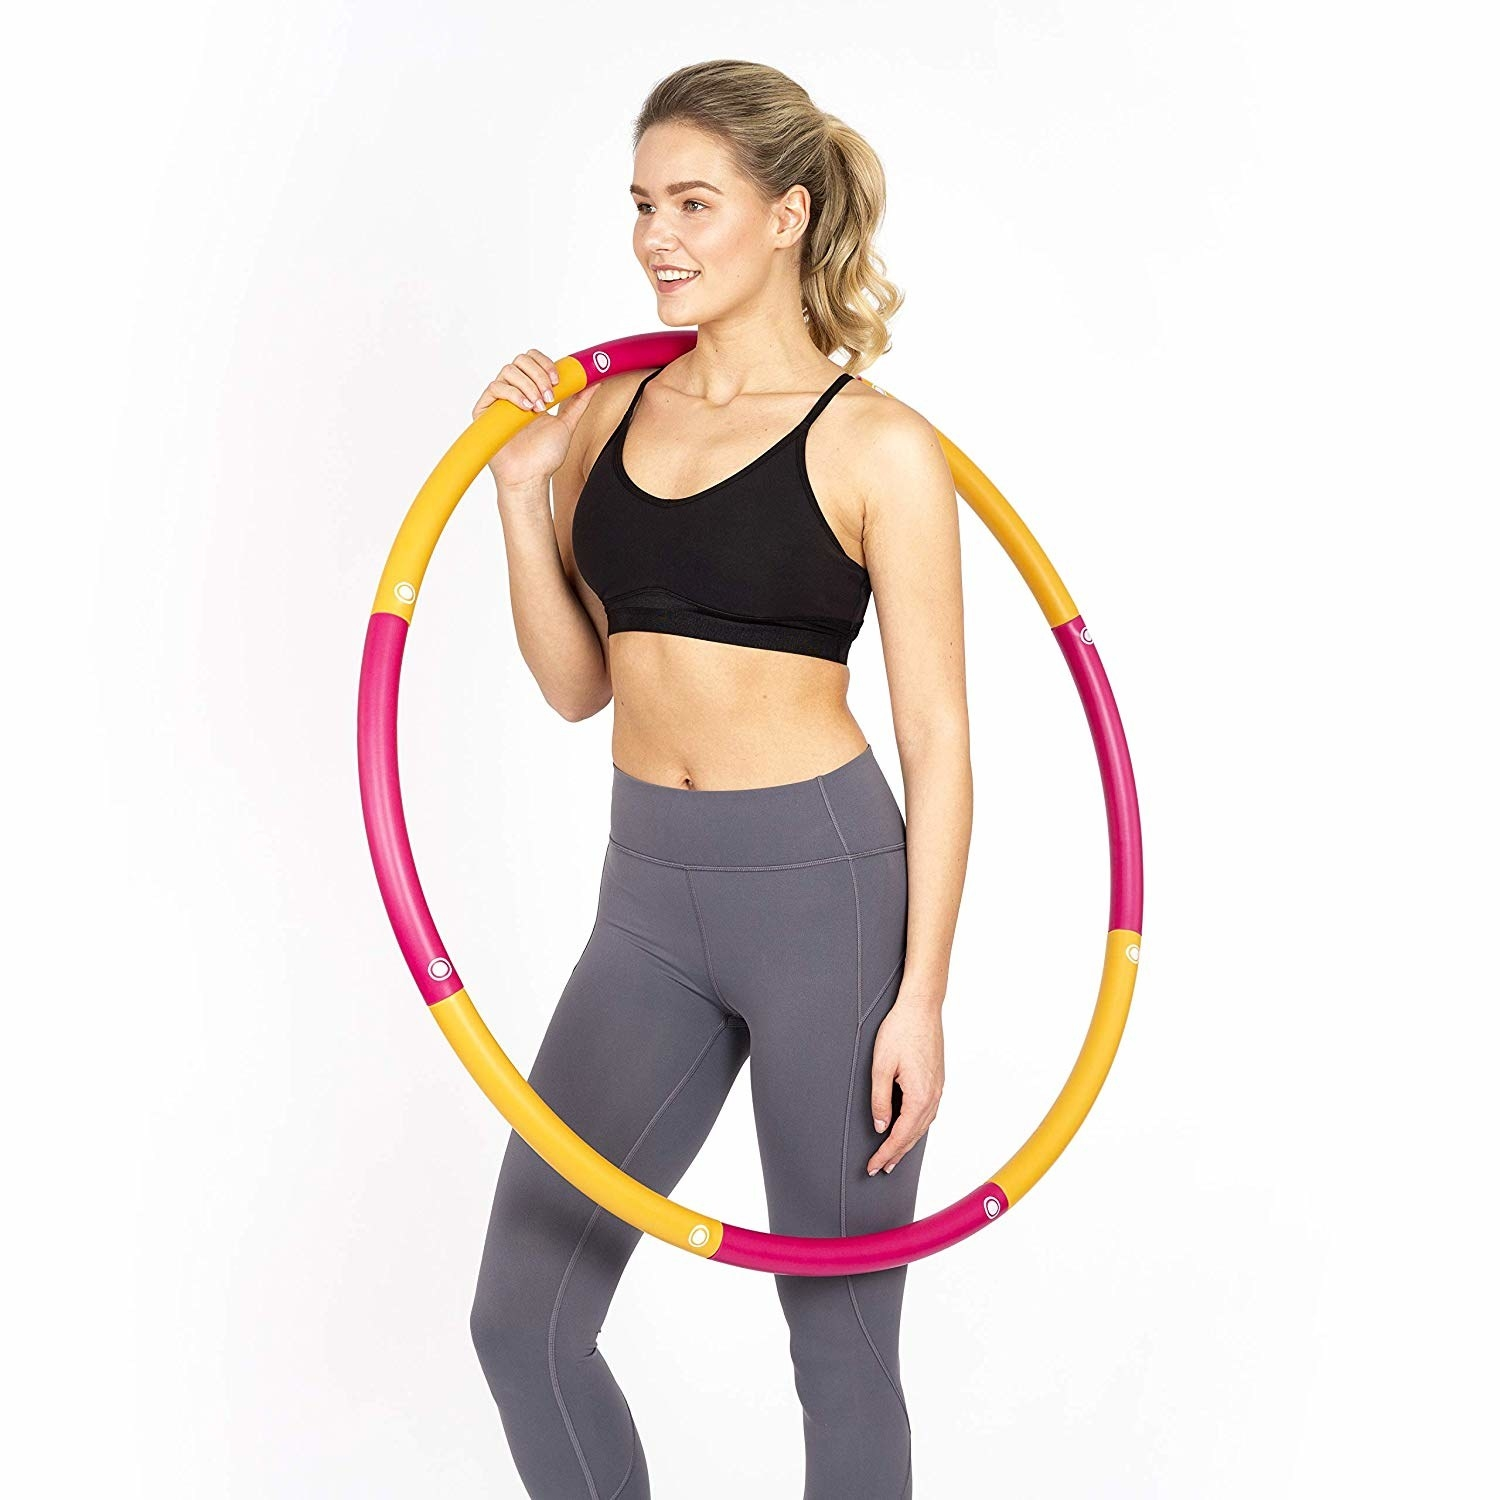 Person in workout clothes holding weighted hoola hoop across shoulder